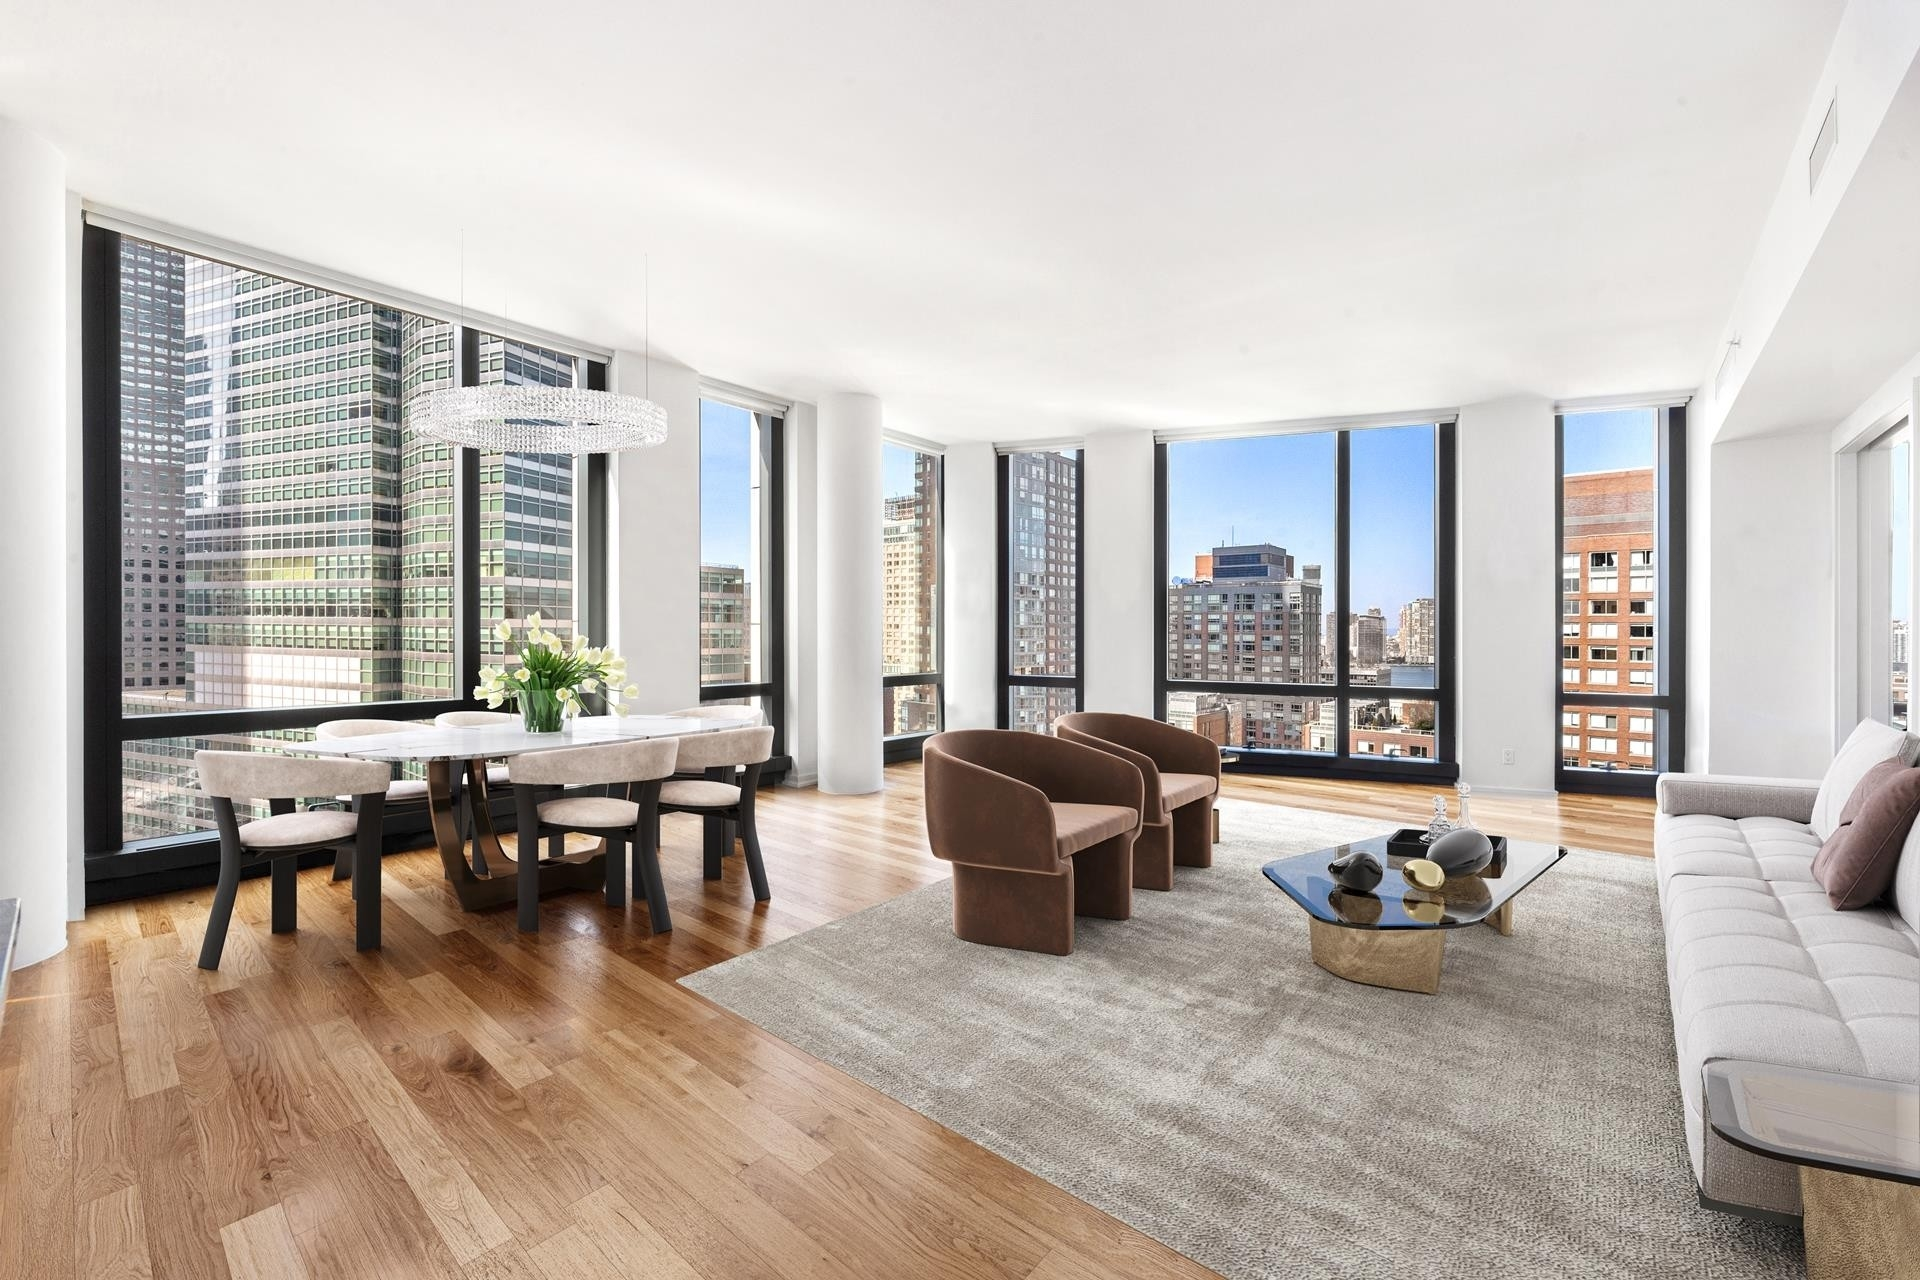 Property en 101 WARREN ST , 1910 TriBeCa, New York, NY 10007